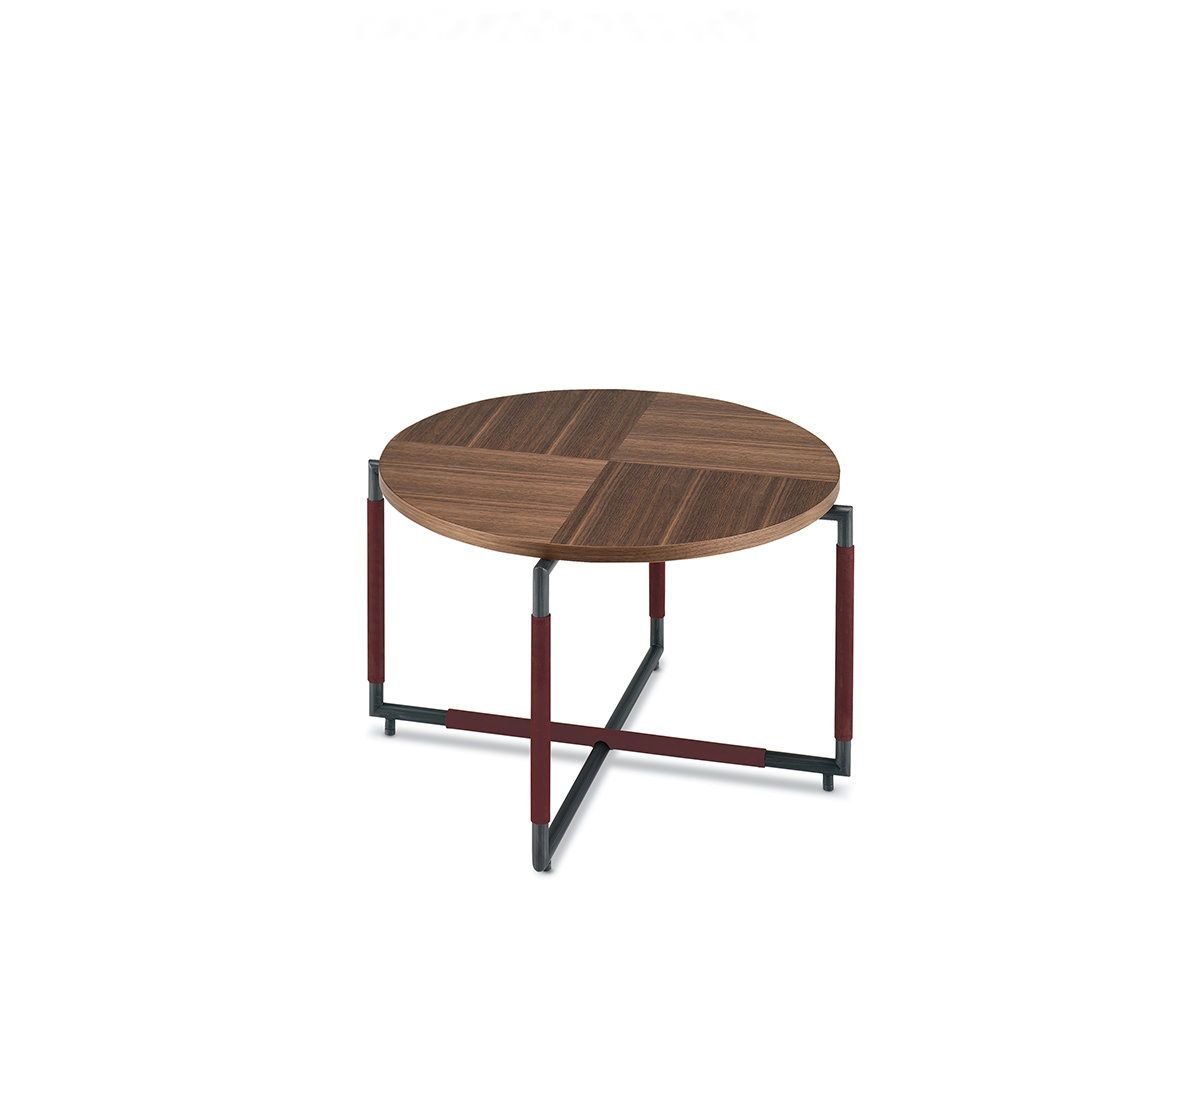 BAK CT O, design Ferruccio Laviani.   Small table with a brushed or lacquered steel frame upholstered with leather and walnut top. Available in square or round version and in two different heights.